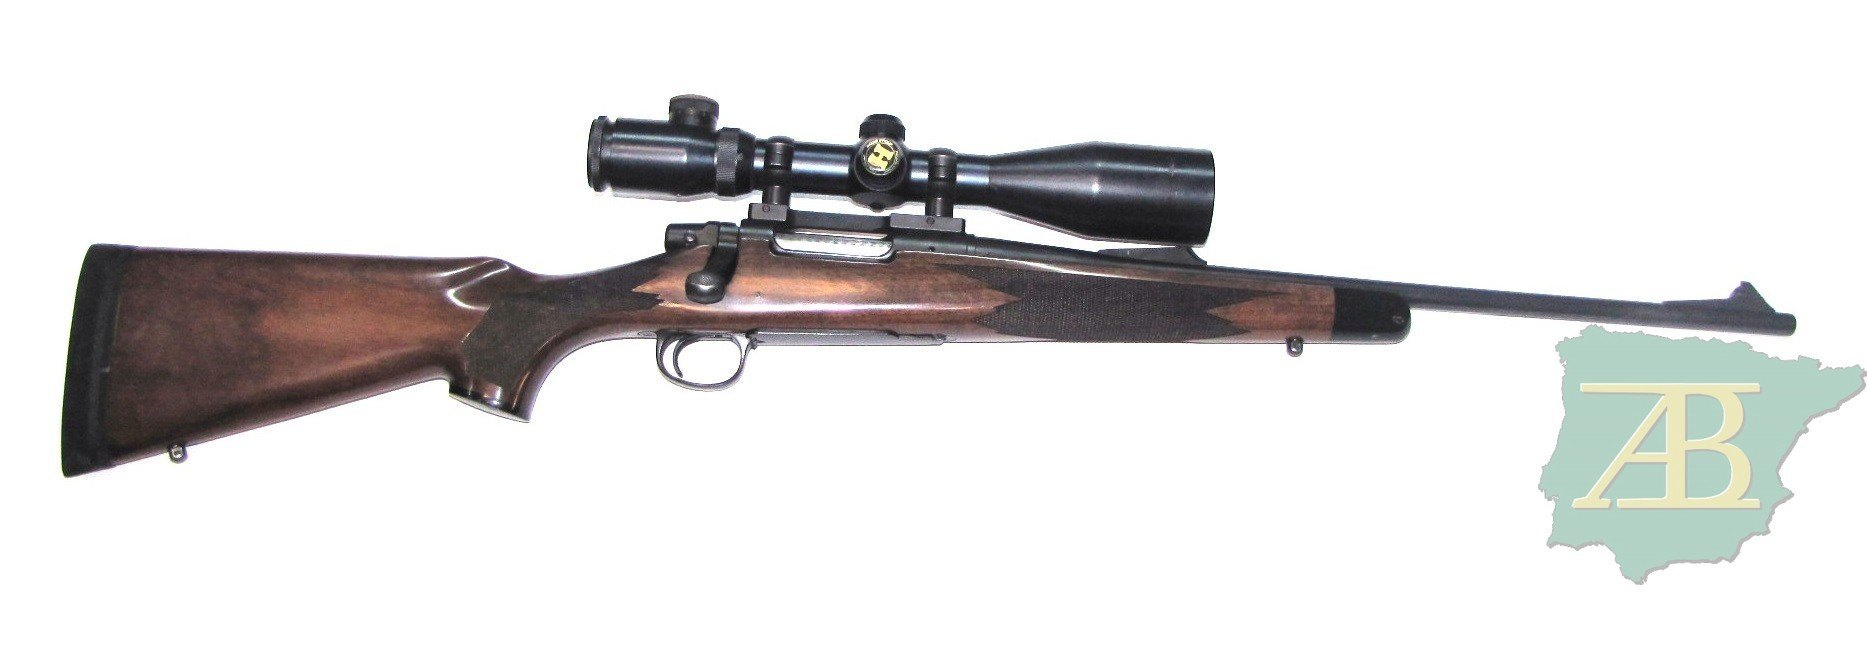 RIFLE DE CERROJO DE CAZA REMINGTON .243 WIN. Ref. 4353